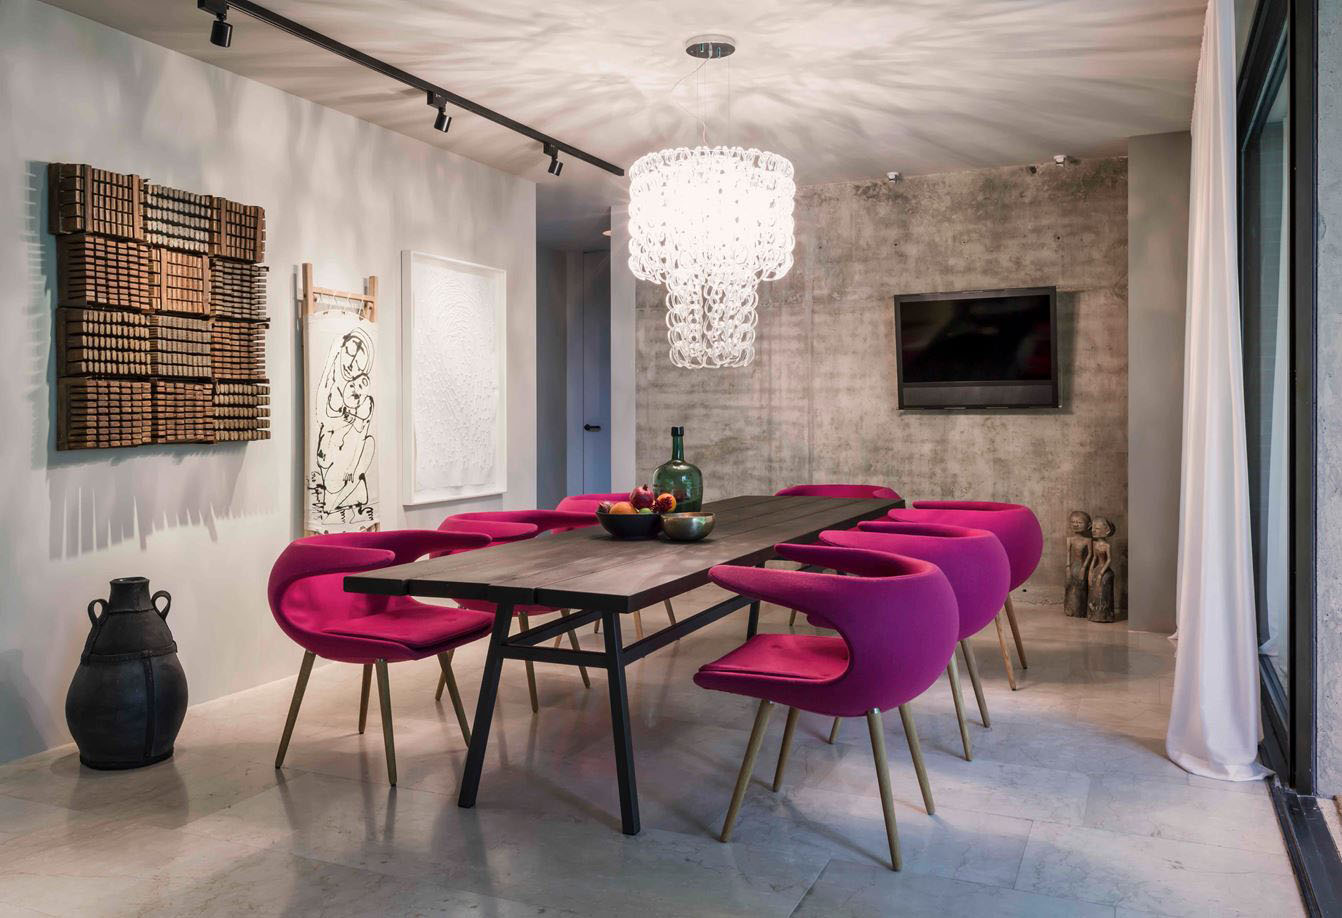 Contemporary Style Renovated Bungalow Offers Timeless Urban Living Idesignarch Interior Design Architecture Interior Decorating Emagazine